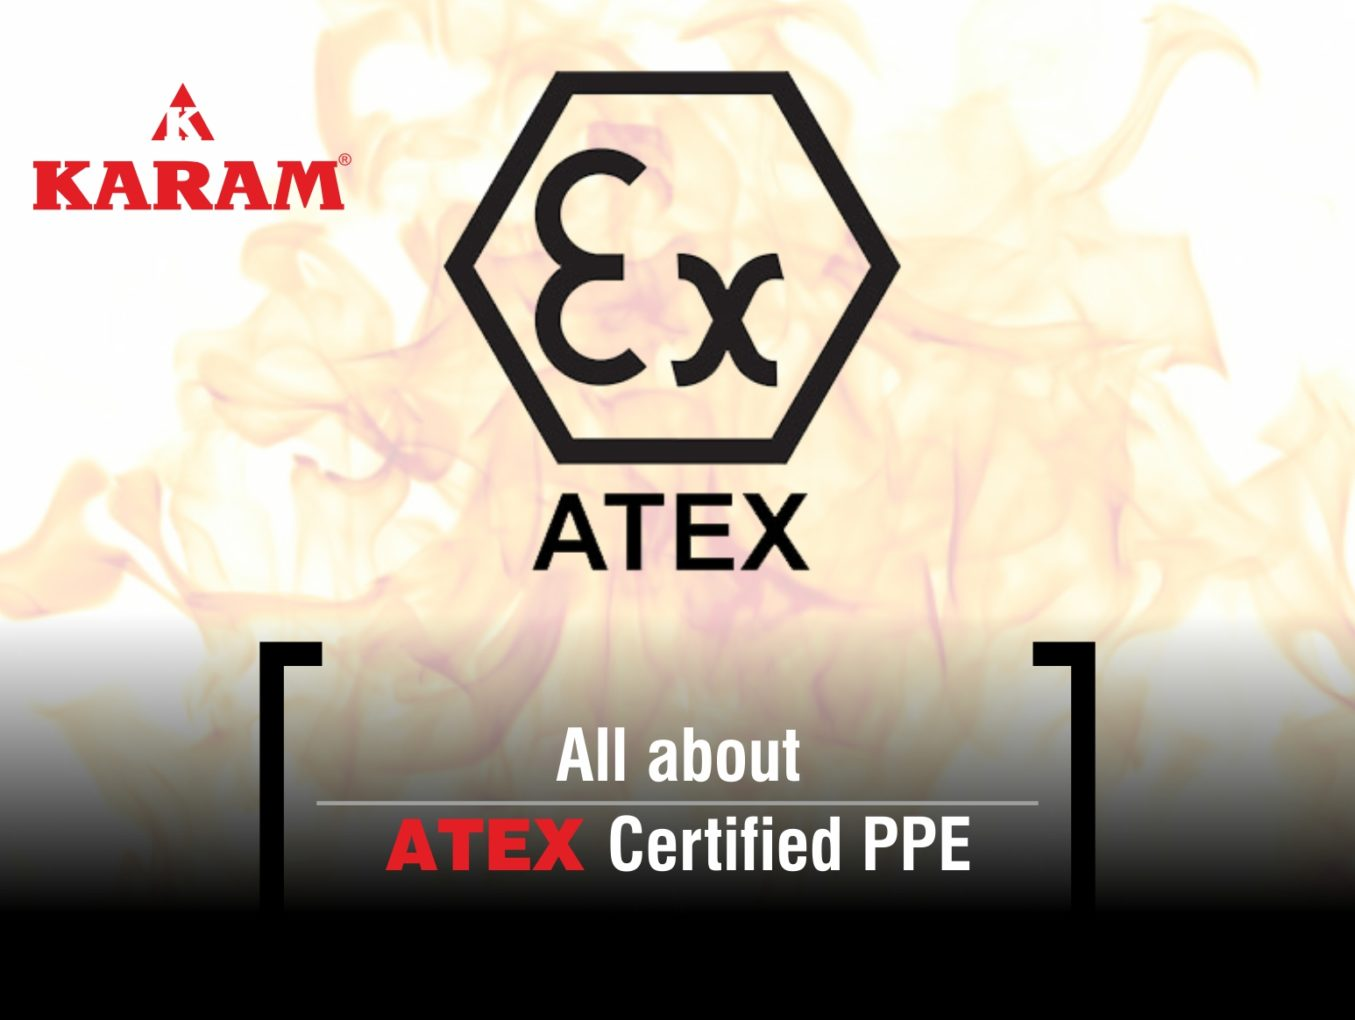 All about ATEX Certified PPE